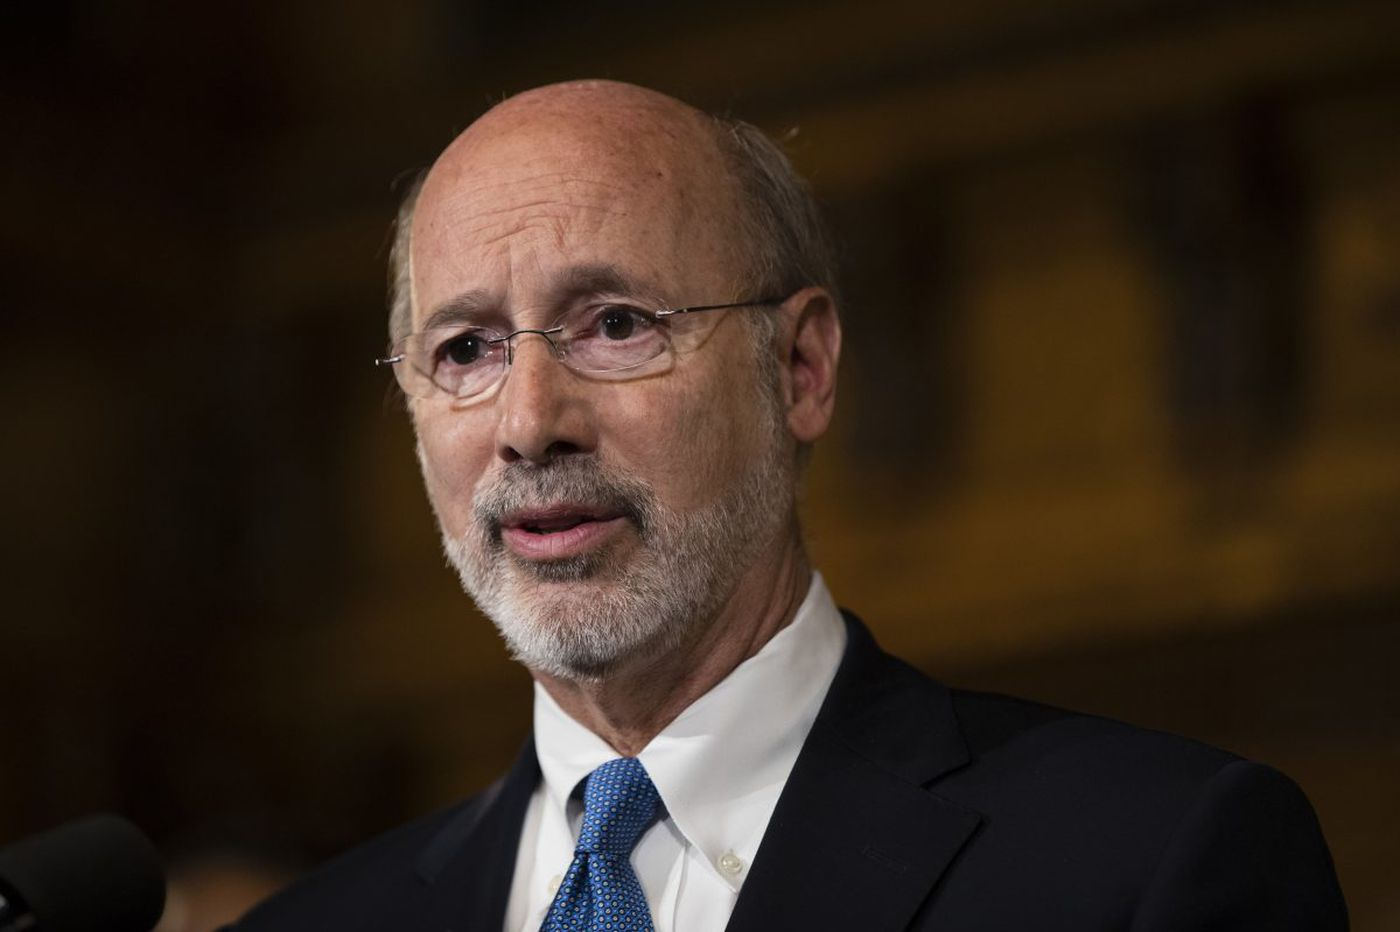 Wolf tight-lipped but optimistic on budget deal